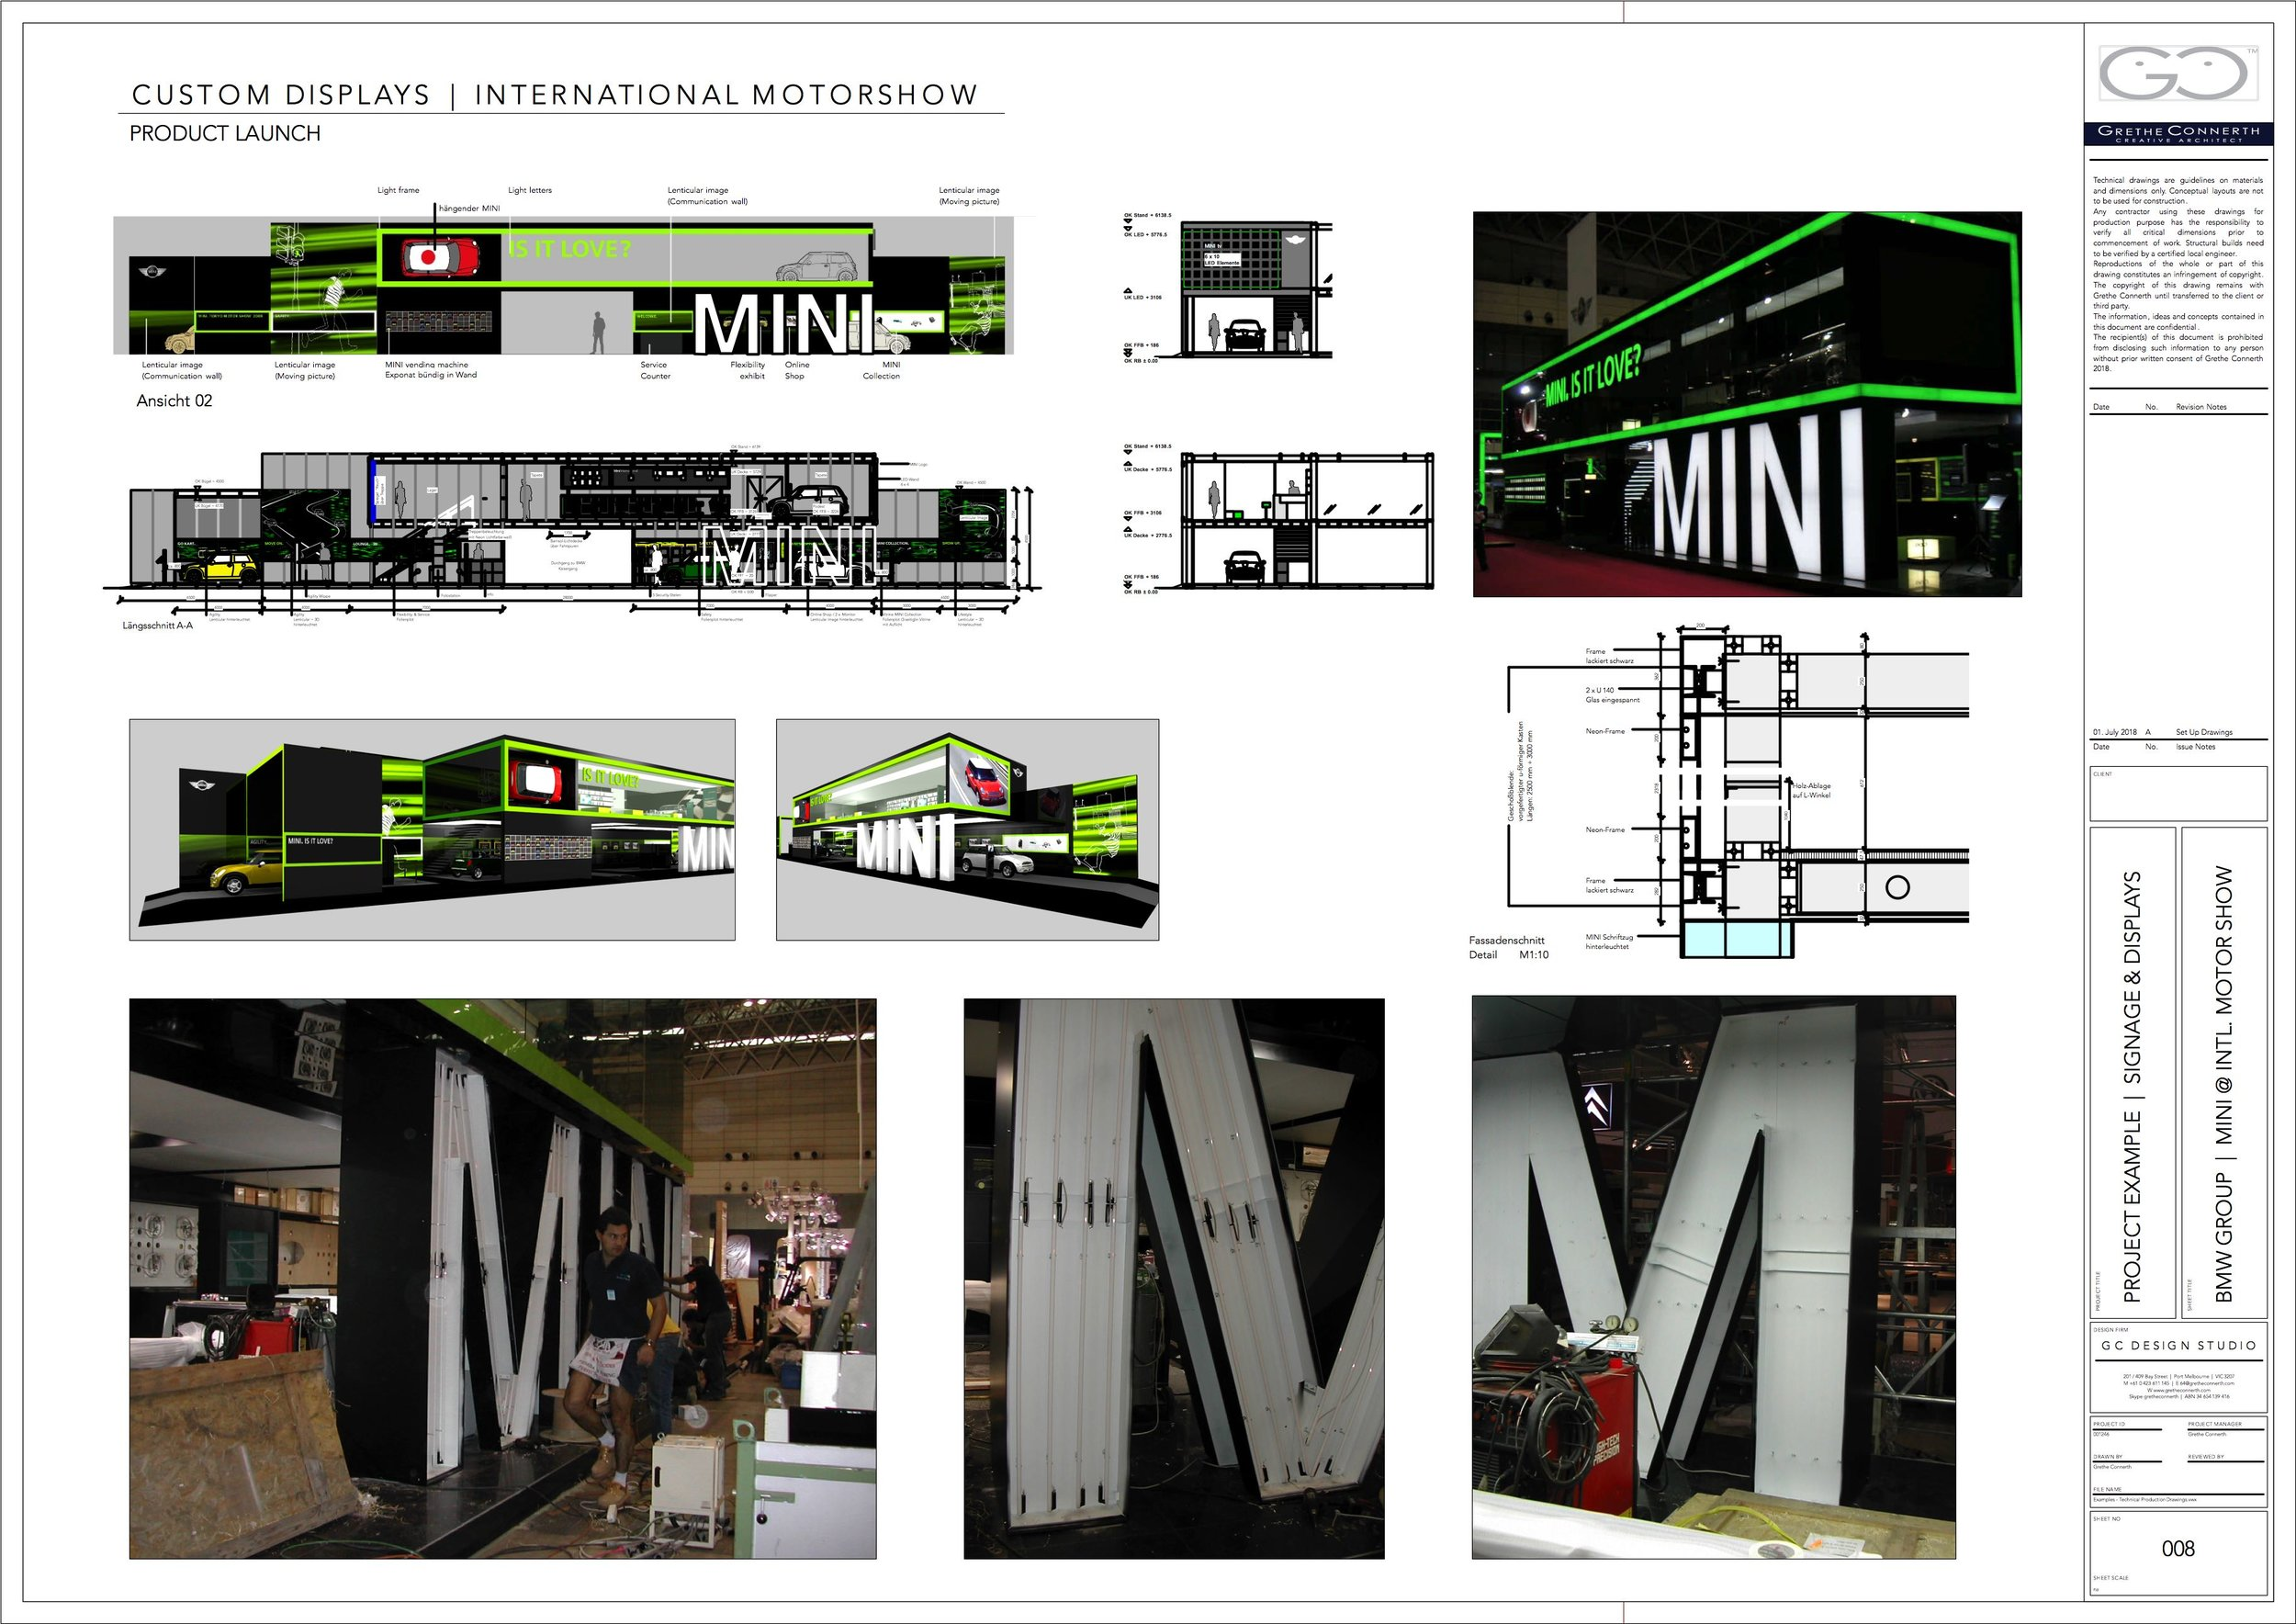 Grethe+Connerth+Trade+Show+Displays+Expo+Booth+Exhibition+Display+Design+Digital+Banner+Print+Expo+Booth+Gallery+Museum+Retail+Brand+Academy+Technical+Production+Documentation+Example+008.jpg